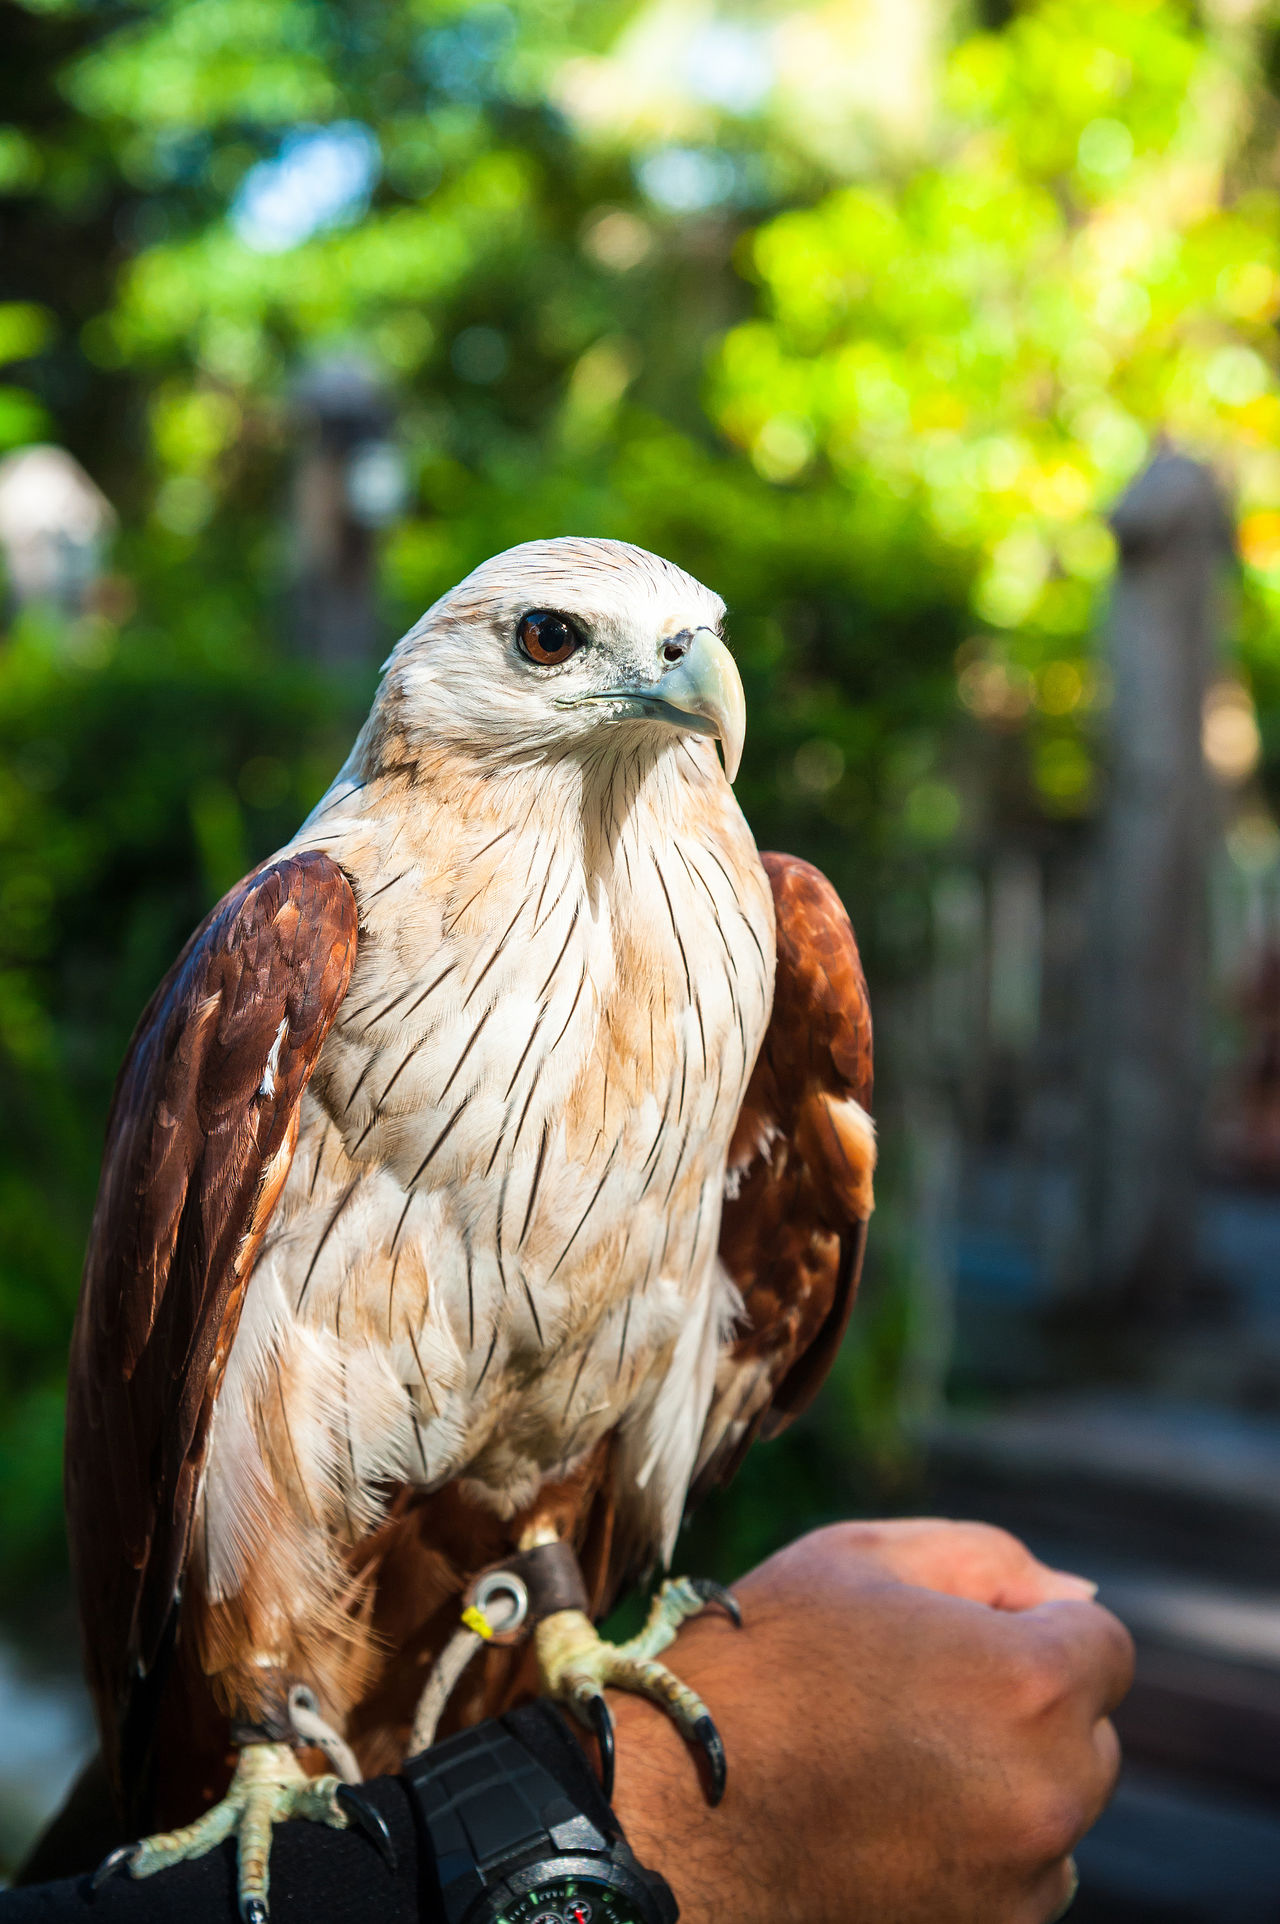 Animal Themes Animal Wildlife Animals In The Wild Bald Eagle Bird Bird Of Prey Close-up Eagle Falcon Feather  Fly Focus On Foreground Hawk Human Body Part Human Hand Hunter Nature One Animal Outdoors Perching Portrait Power Predator Predator And Prey Sparrow